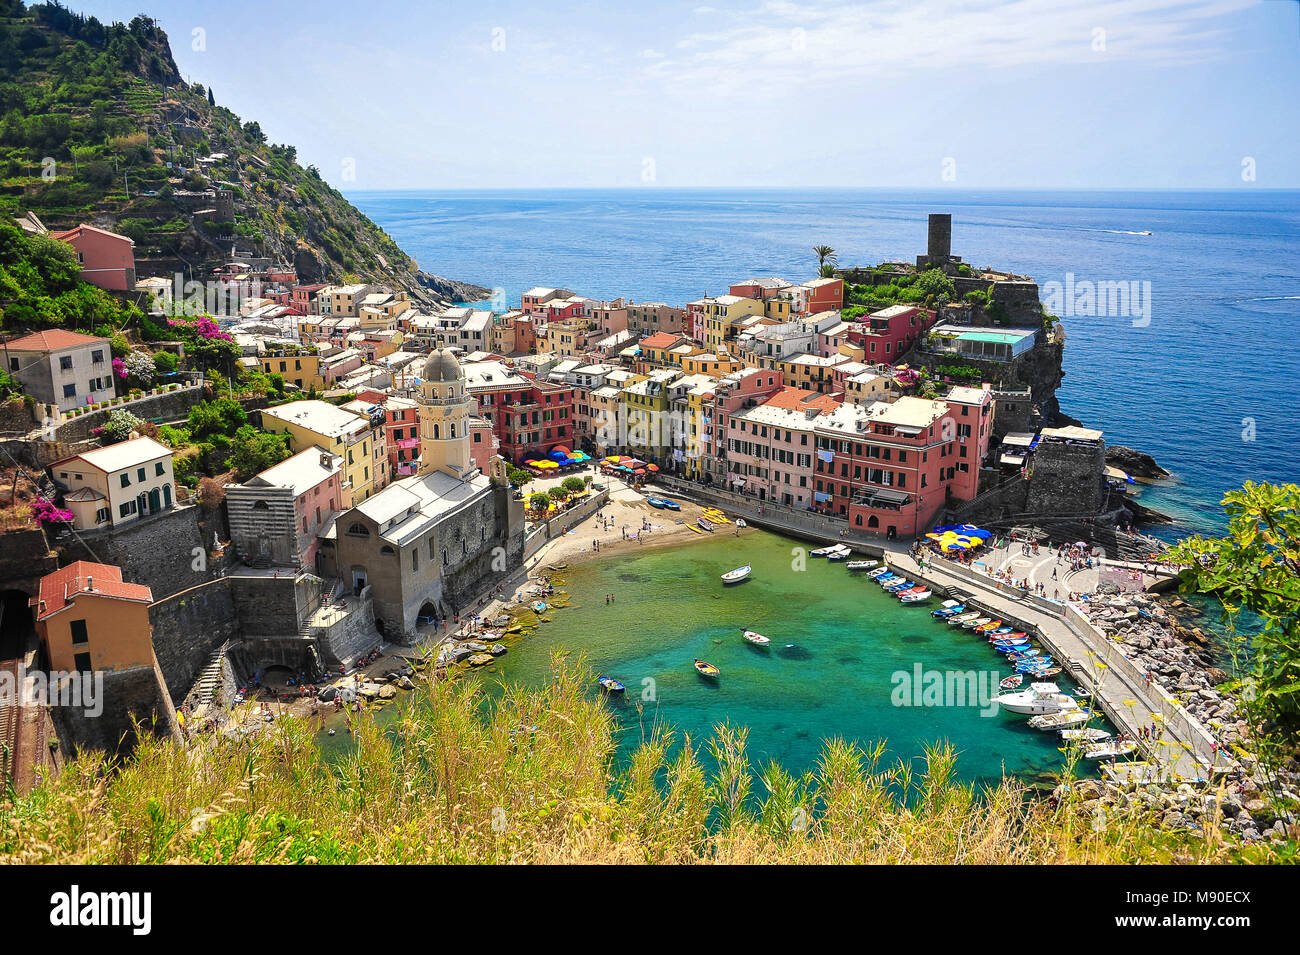 Prettily painted houses surrounded by an azure sea. Aerial view of Vernazza - one of five picturesque villages in - Stock Image